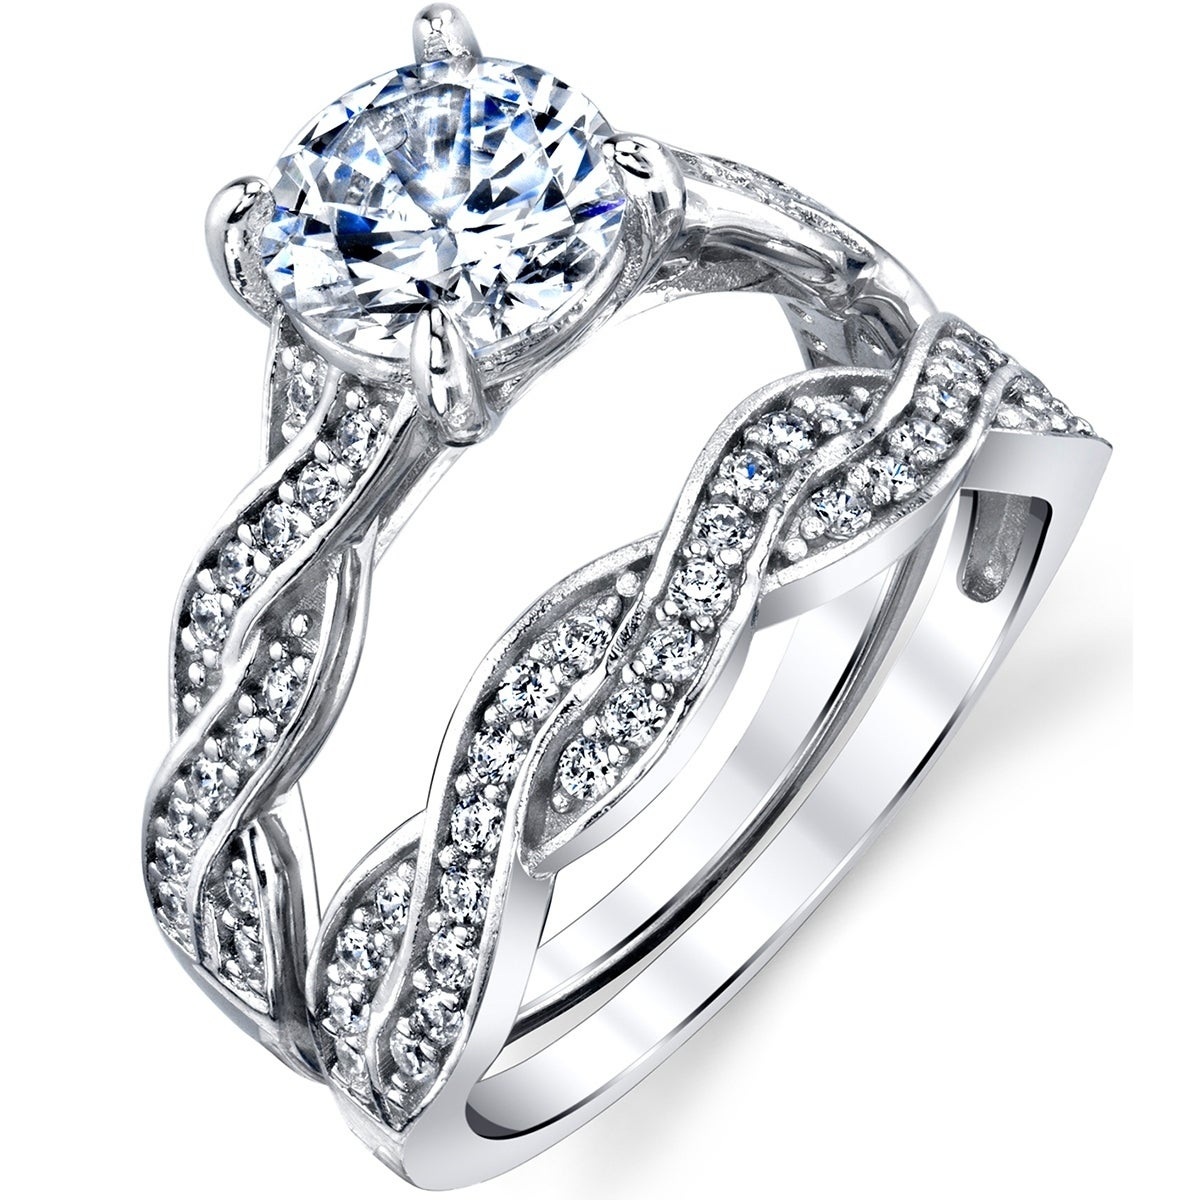 Oliveti Sterling Silver Infinity Cubic Zirconia Wedding Band Engagement Ring Bridal Set Clear